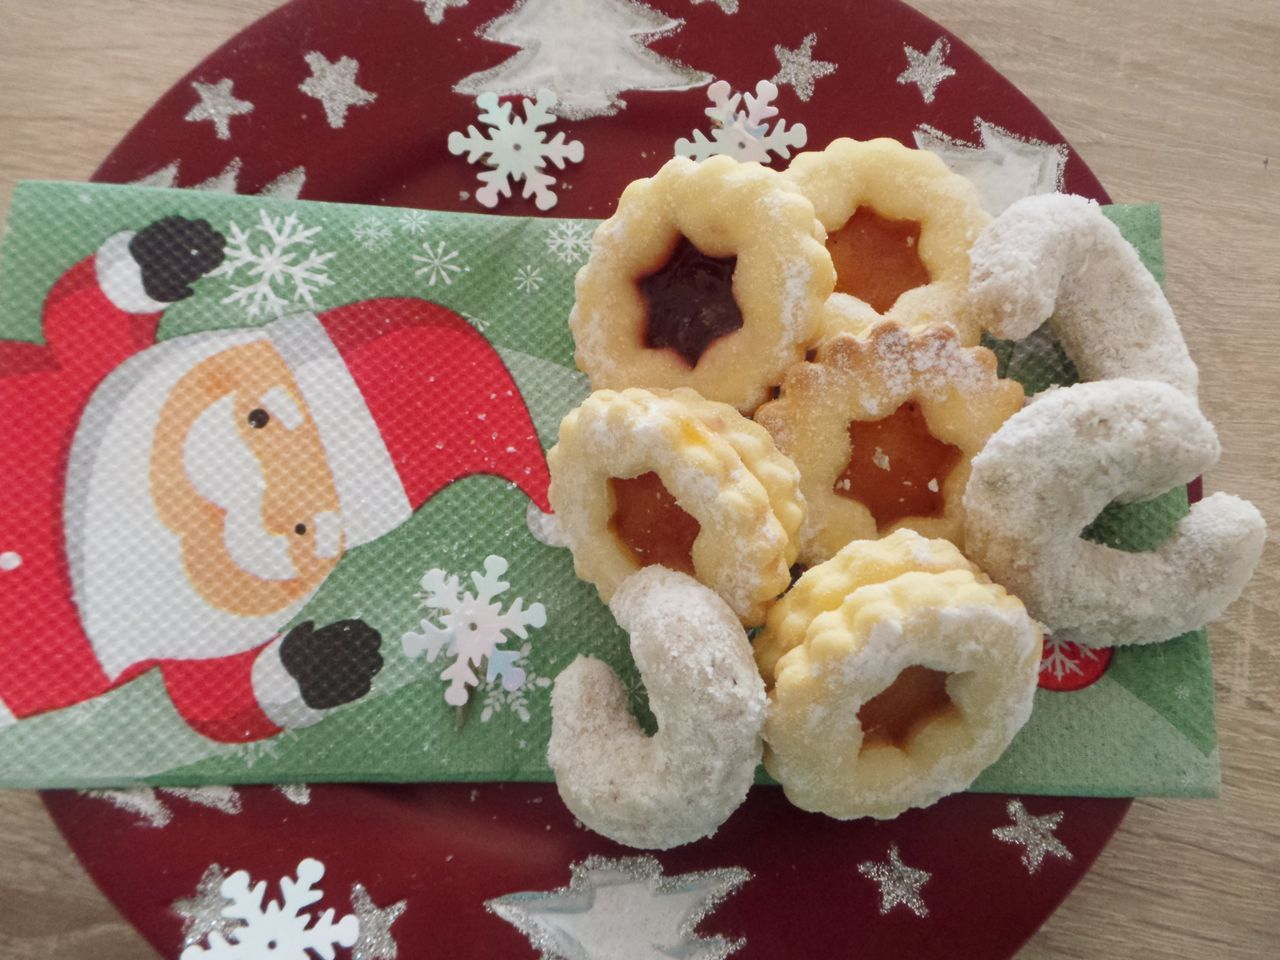 Biscuits Christmas Biscuits Close-up Day Desserts Directly Above Food Holiday Food Napkin No People Outdoors Plate Ready-to-eat Santa Santa Claus Sweets